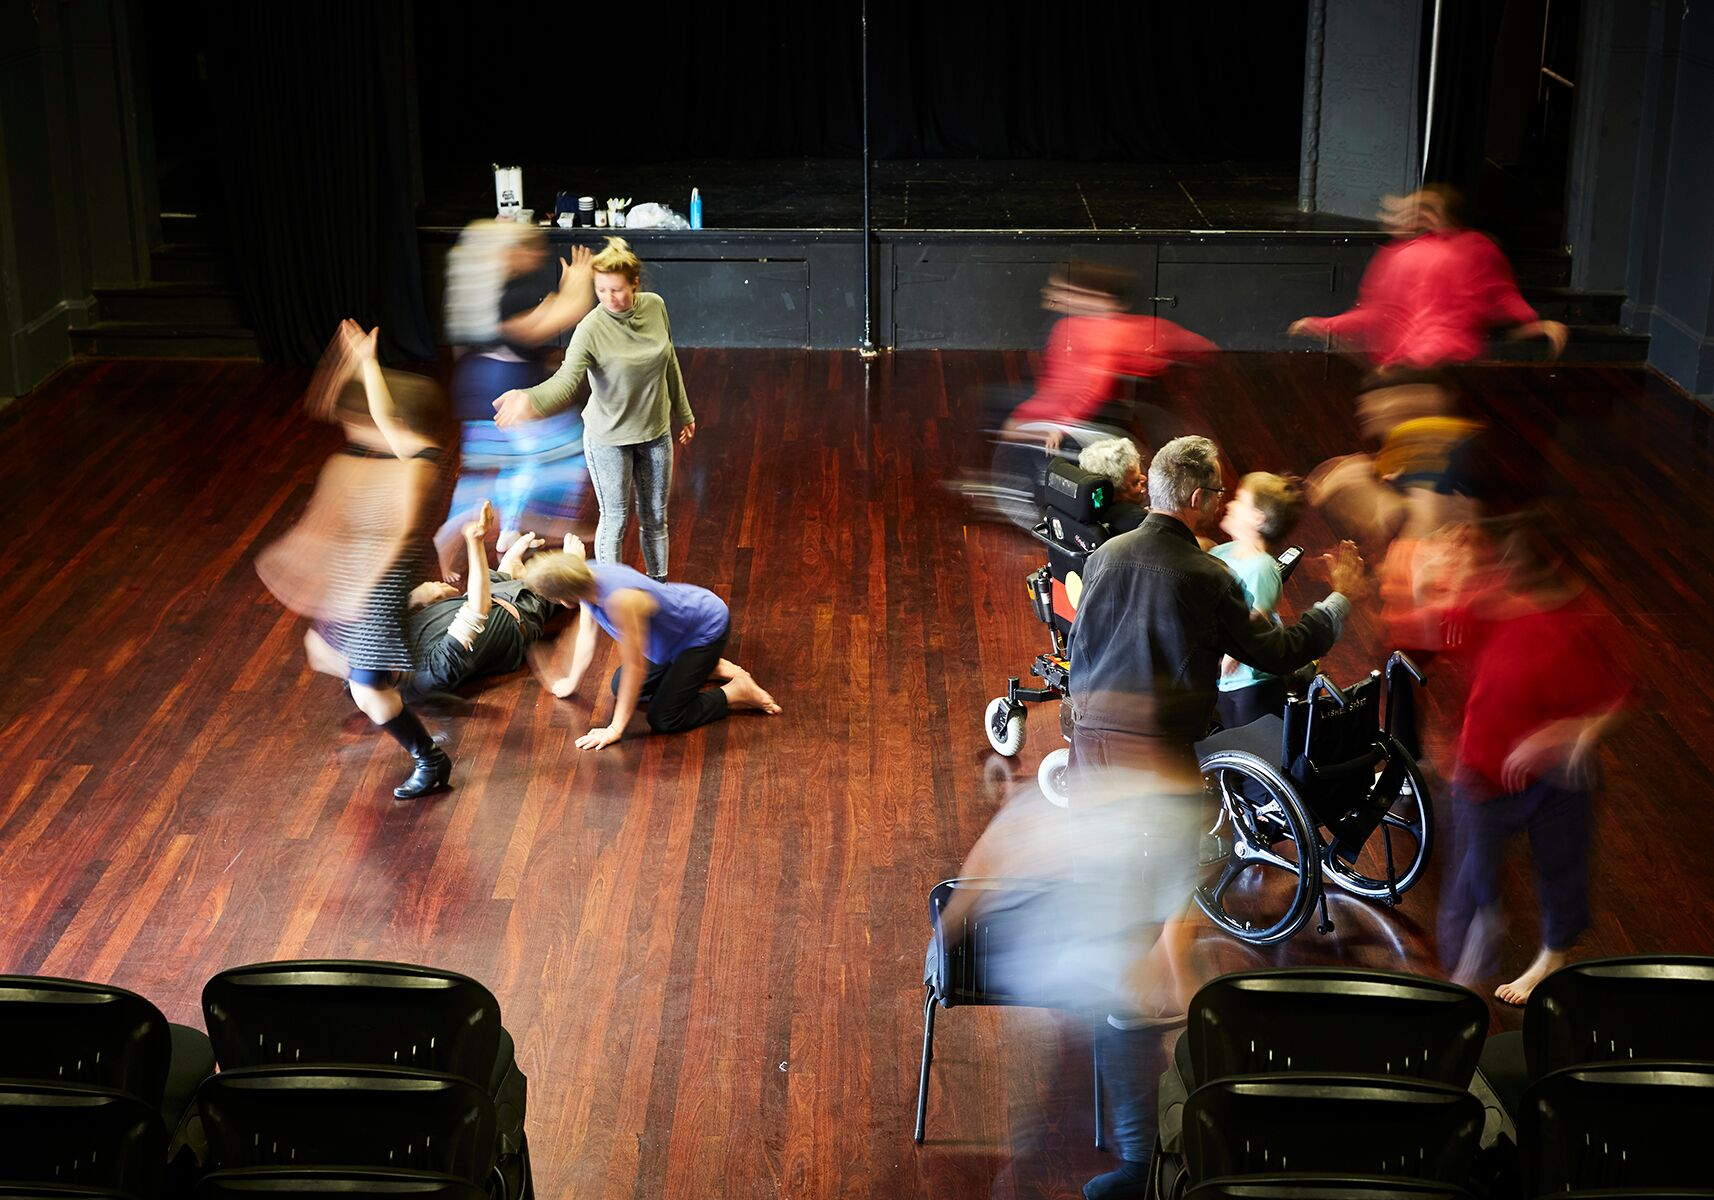 Group of people moving in rehearsal space, blurred and in bright colours.